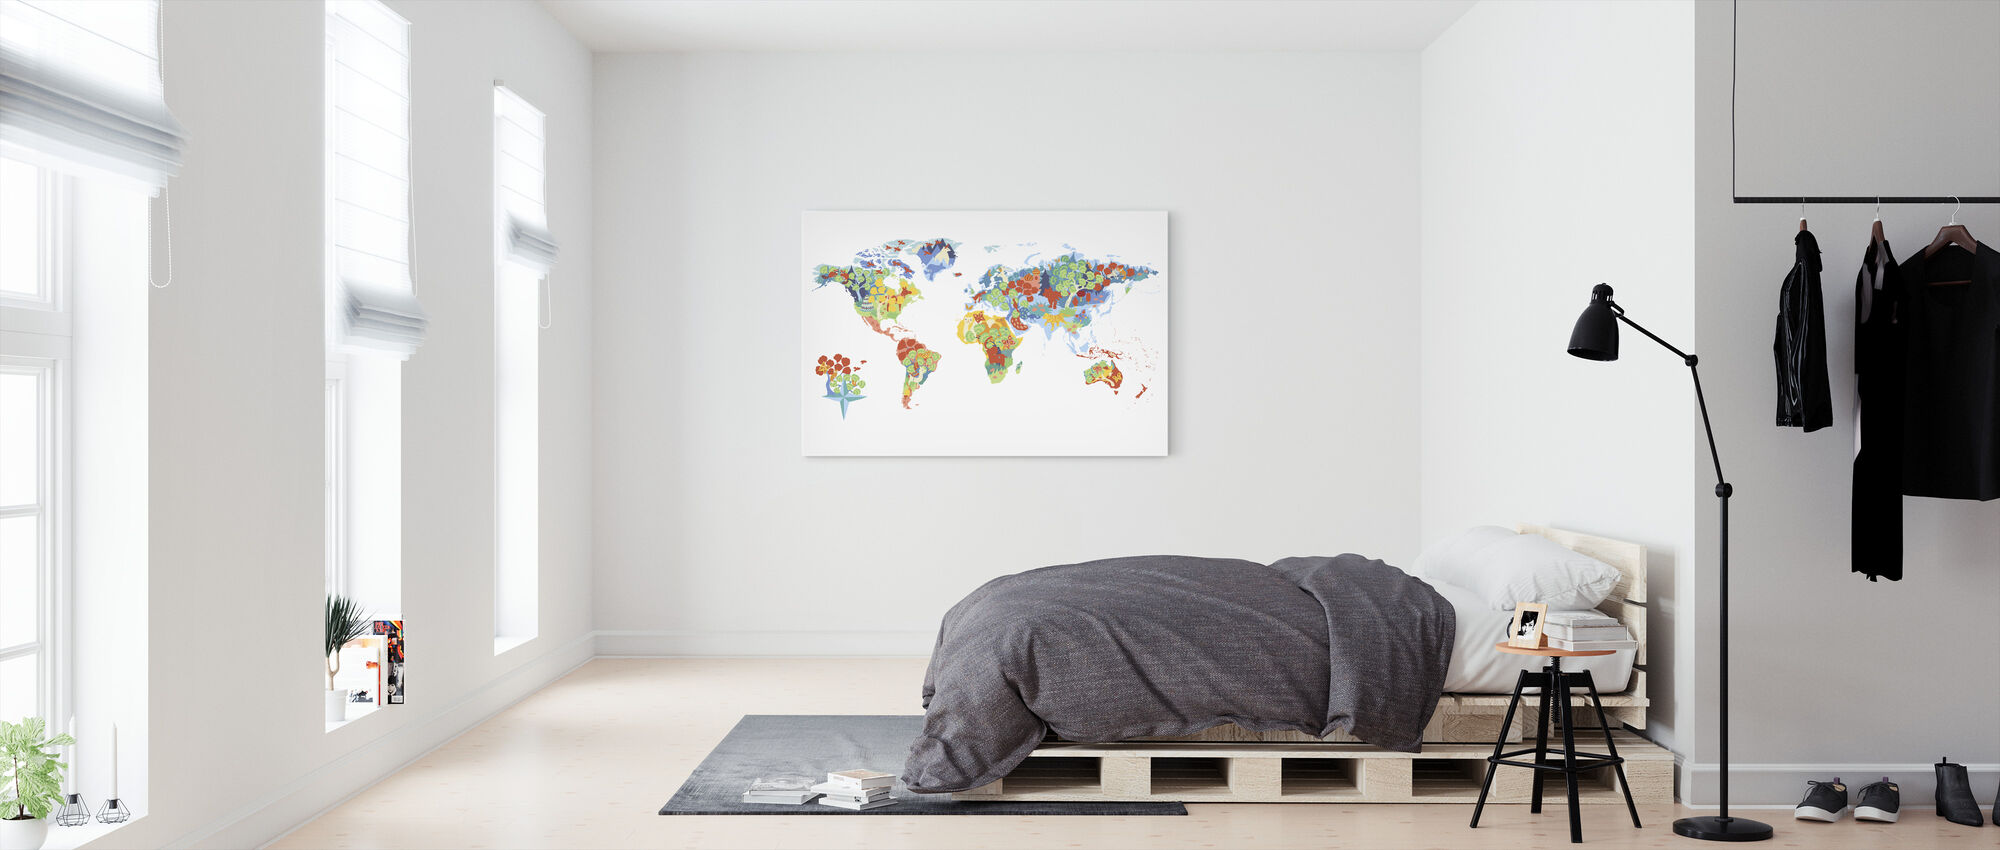 Wonderful World - Canvas print - Bedroom